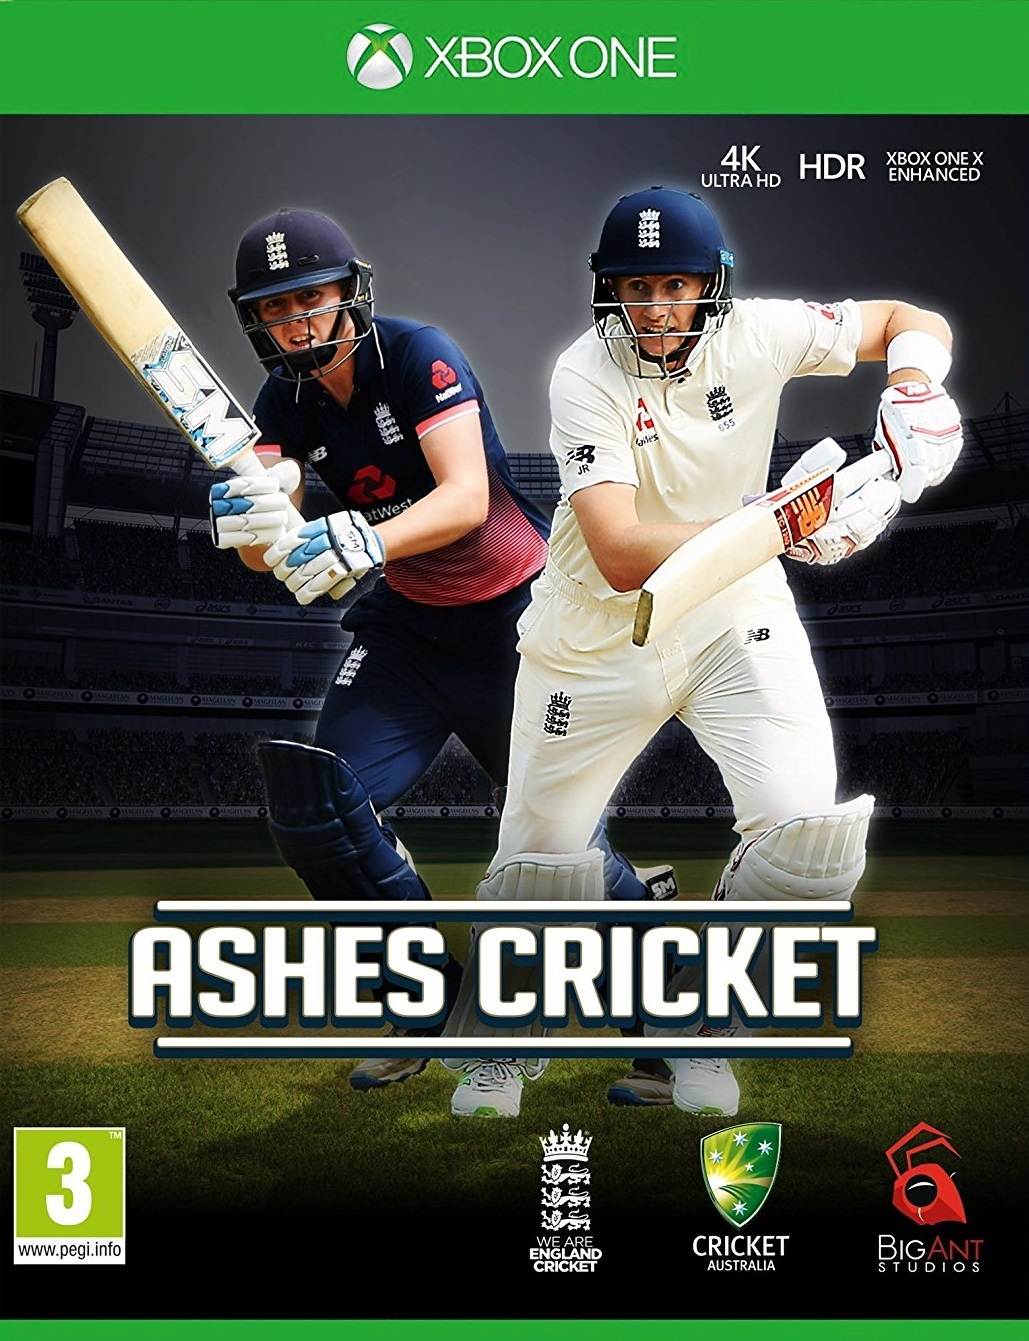 Ashes Cricket for Xbox One image